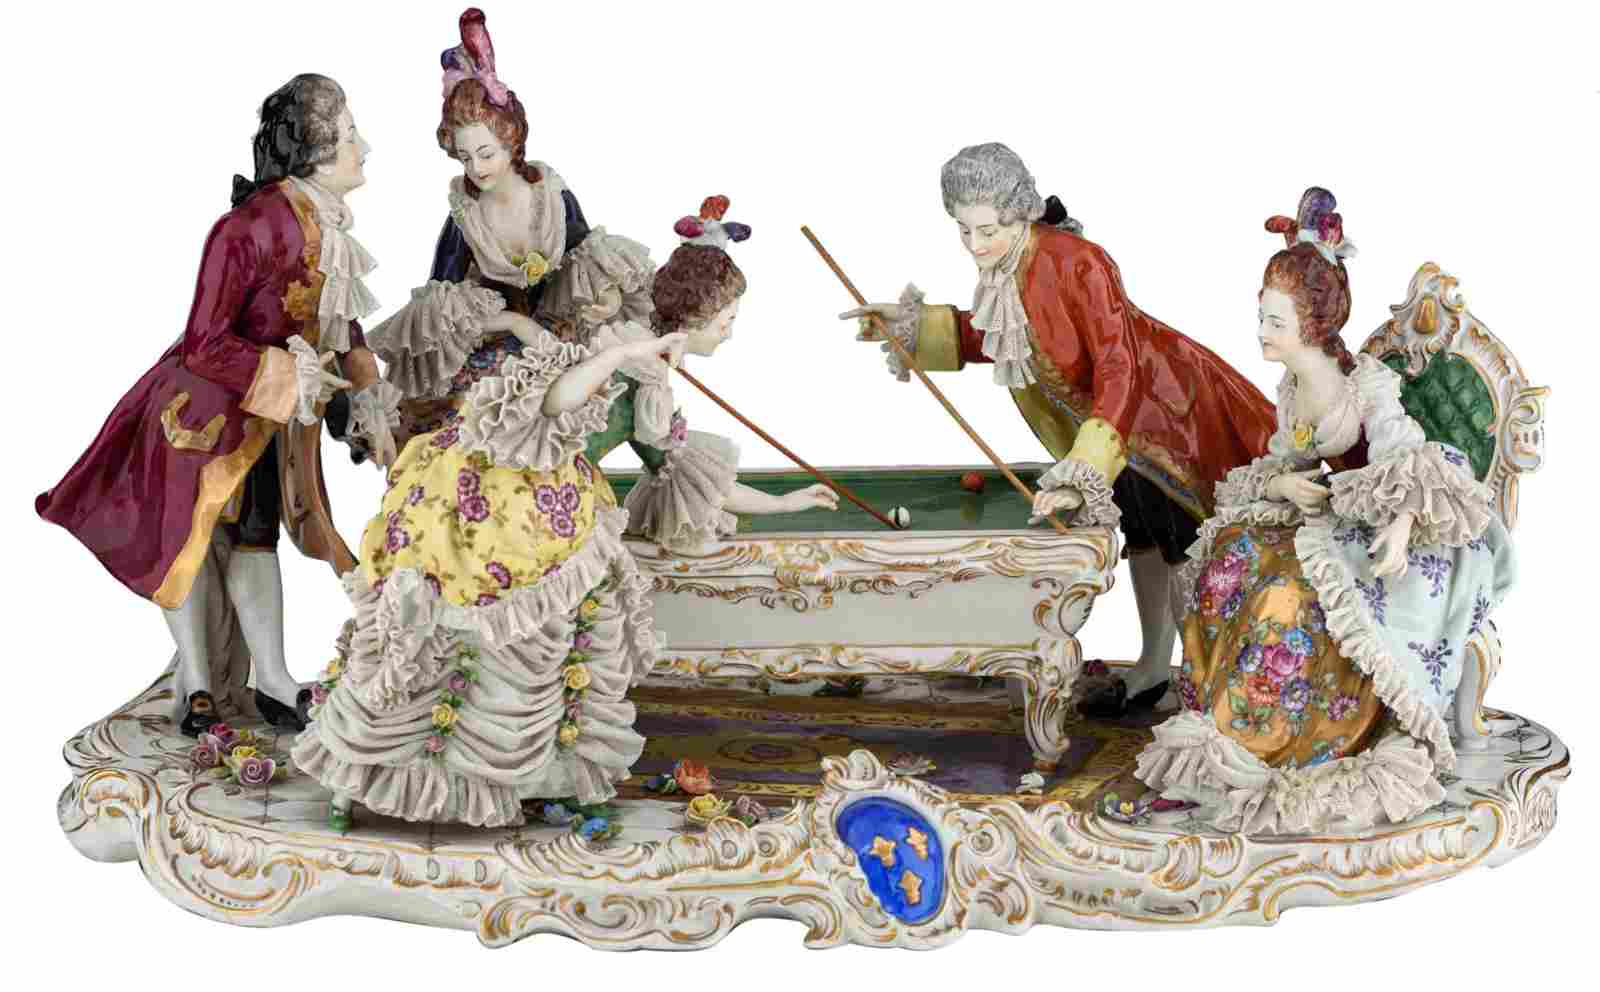 A Rococo style polychrome decorated Saxony porcelain